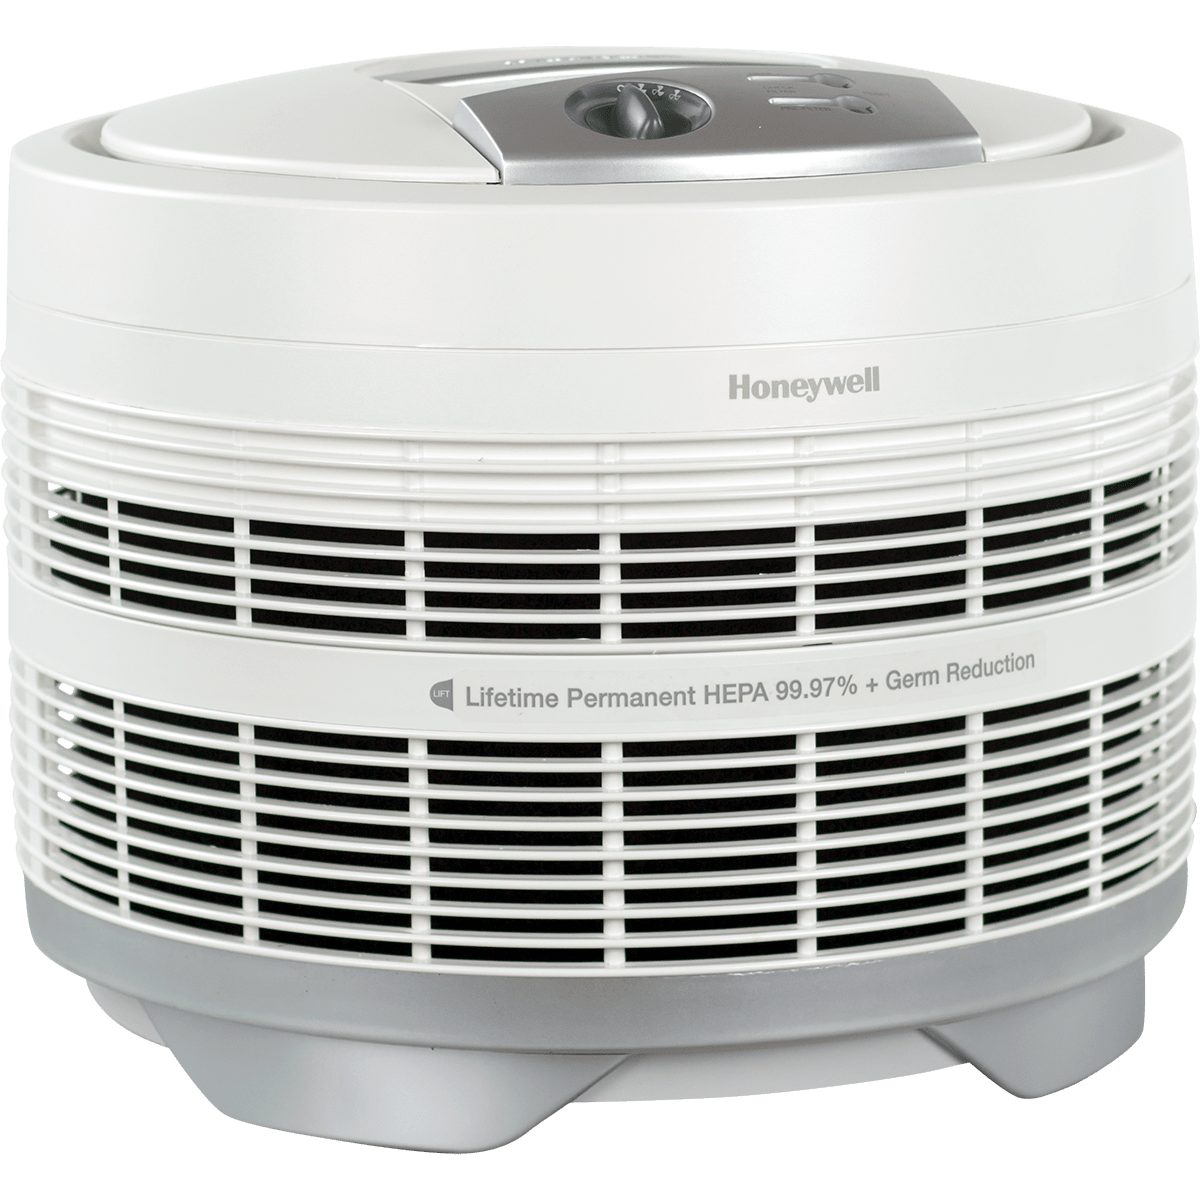 Honeywell Enviracaire 50150 Air Purifier ho634